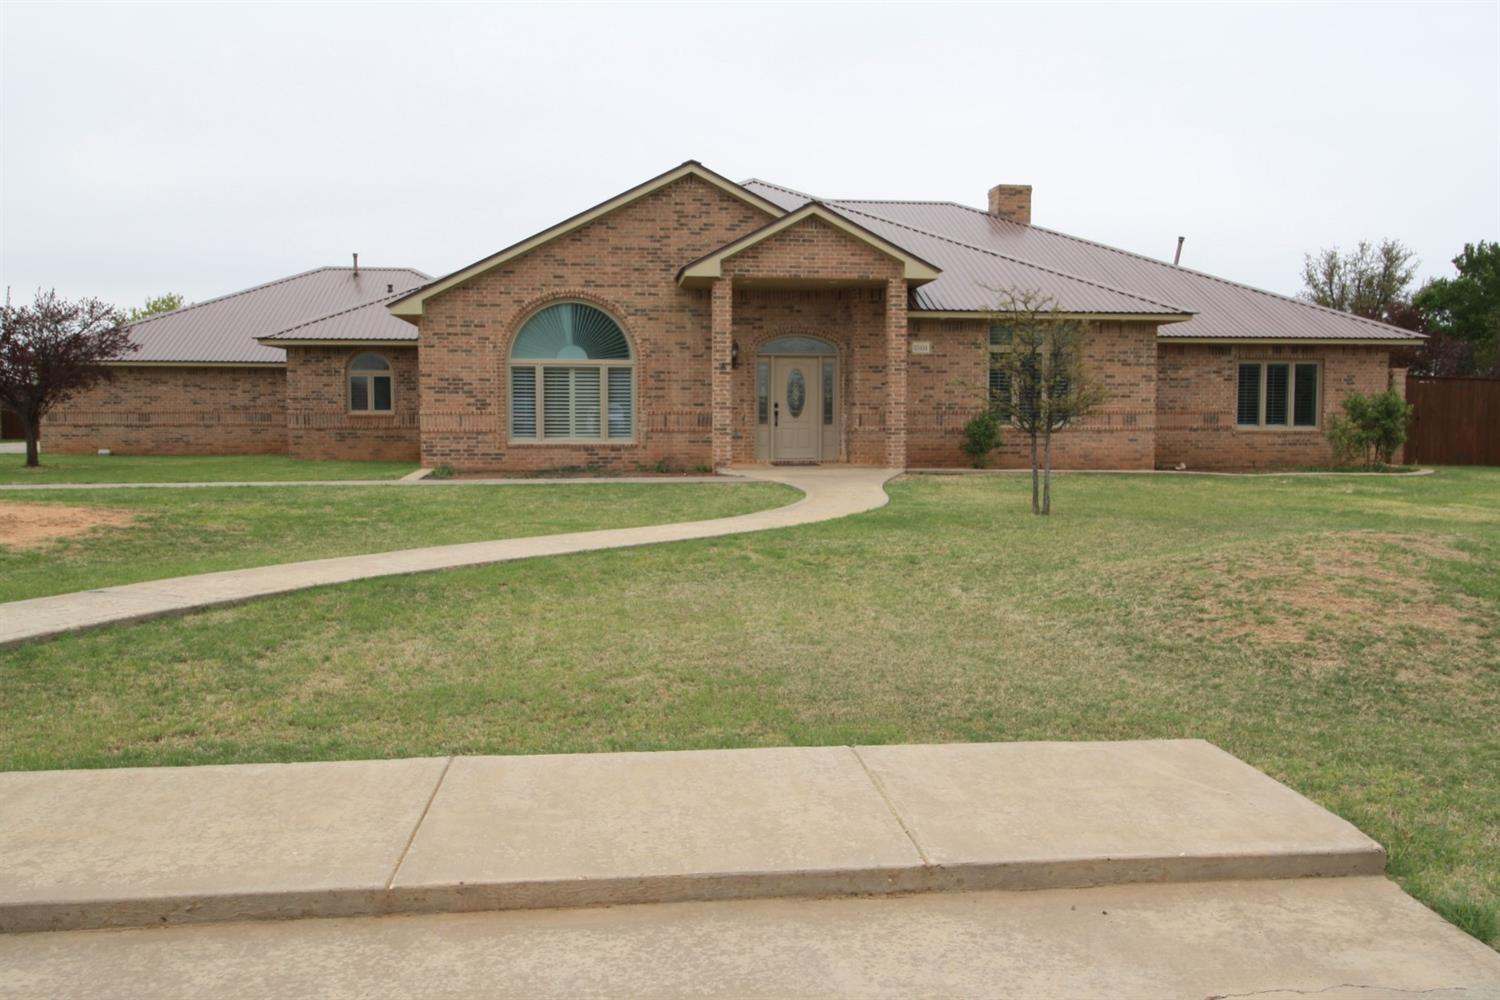 $71,000 BELOW recent appraisal!! This beautiful home in Highland Oaks is a steal ~ 4 Bedrooms ~ 3.5 Bathrooms ~ 3 Car Garage ~ .9 Acres ~ Office w/ Built-in's ~ Formal Dining Area ~ Bar w/ Kegerator & Wine Fridge ~ Large Kitchen w/ Gas Stove-top ~ Granite Counter-tops ~ Wine Rack ~ Huge Walk-in Pantry ~ Open Living Room With Plenty of Room For Family Gatherings ~ Isolated Master Suite ~ Spa Like Master Bath ~ Master Closet Wraps Around the  Tub ~ 3 Large Guest Bedrooms and 2 Additional Bathrooms ~ Basement Has Brick Walls & Storage ~ Utility Room Has More Storage Than You Know What to do With....Sink, 2 Walk-In Pantries & Room For Freezer ~ Walk Outside into the Gorgeous Oasis...Huge Covered Patio ~ Indoor/Outdoor Pool w/ Slide, Waterfall, Bar, & Bathroom!!  NEW Well!  Oh, And Did I Mention..INSTANT Equity!!